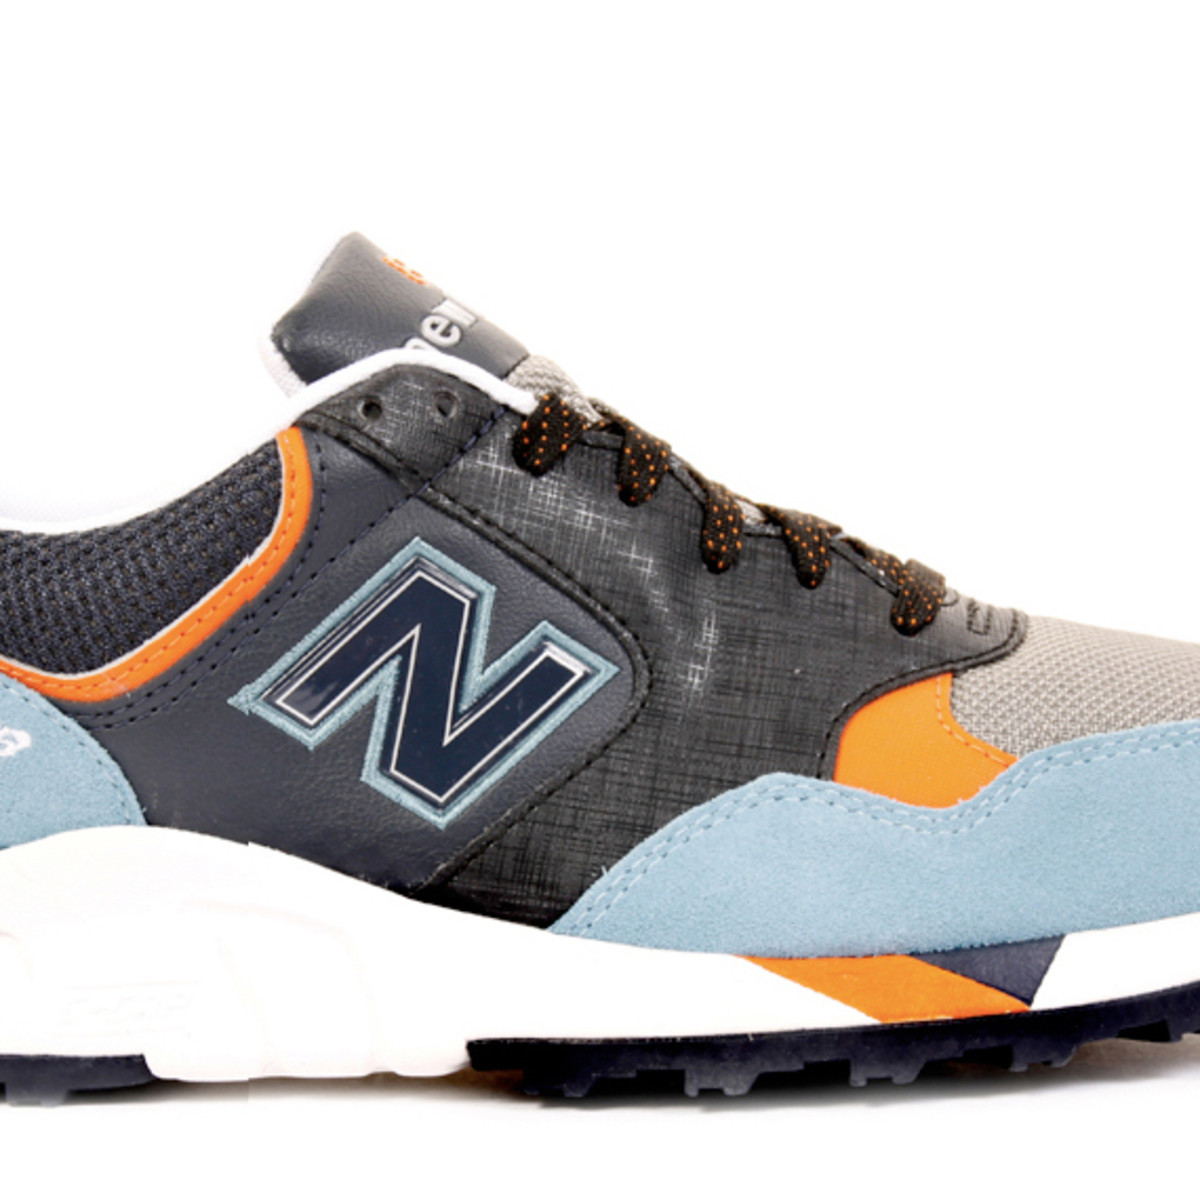 new-balance-fall-2009-850-basket-01a